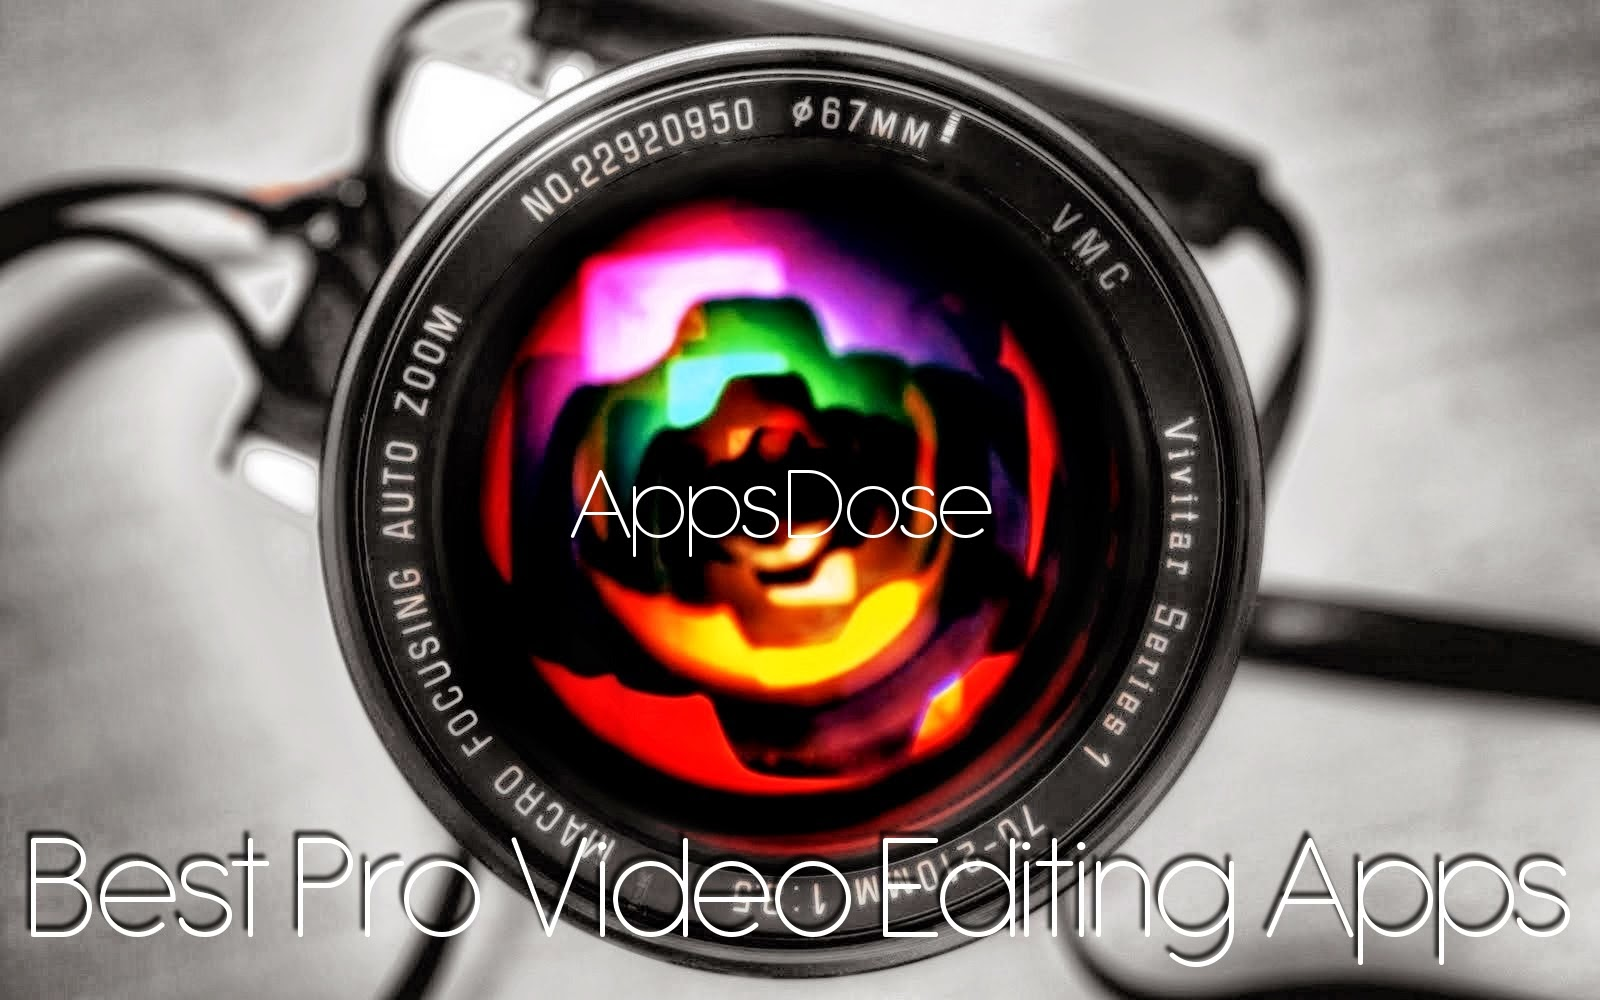 Best Pro Video Editing apps for iPad and iPhone AppsDose